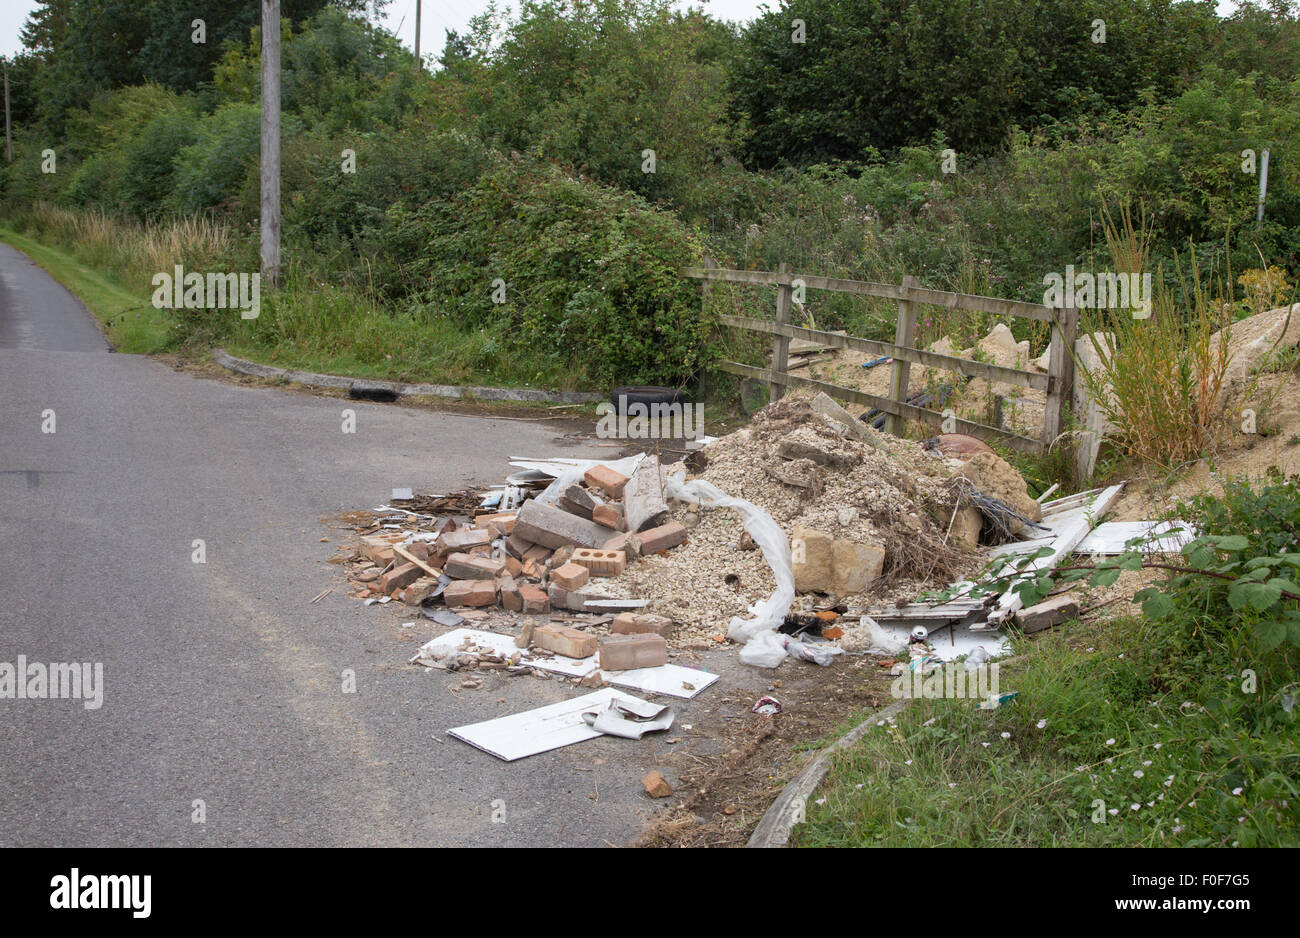 Fly-tipping in a country lane, England, UK - Stock Image